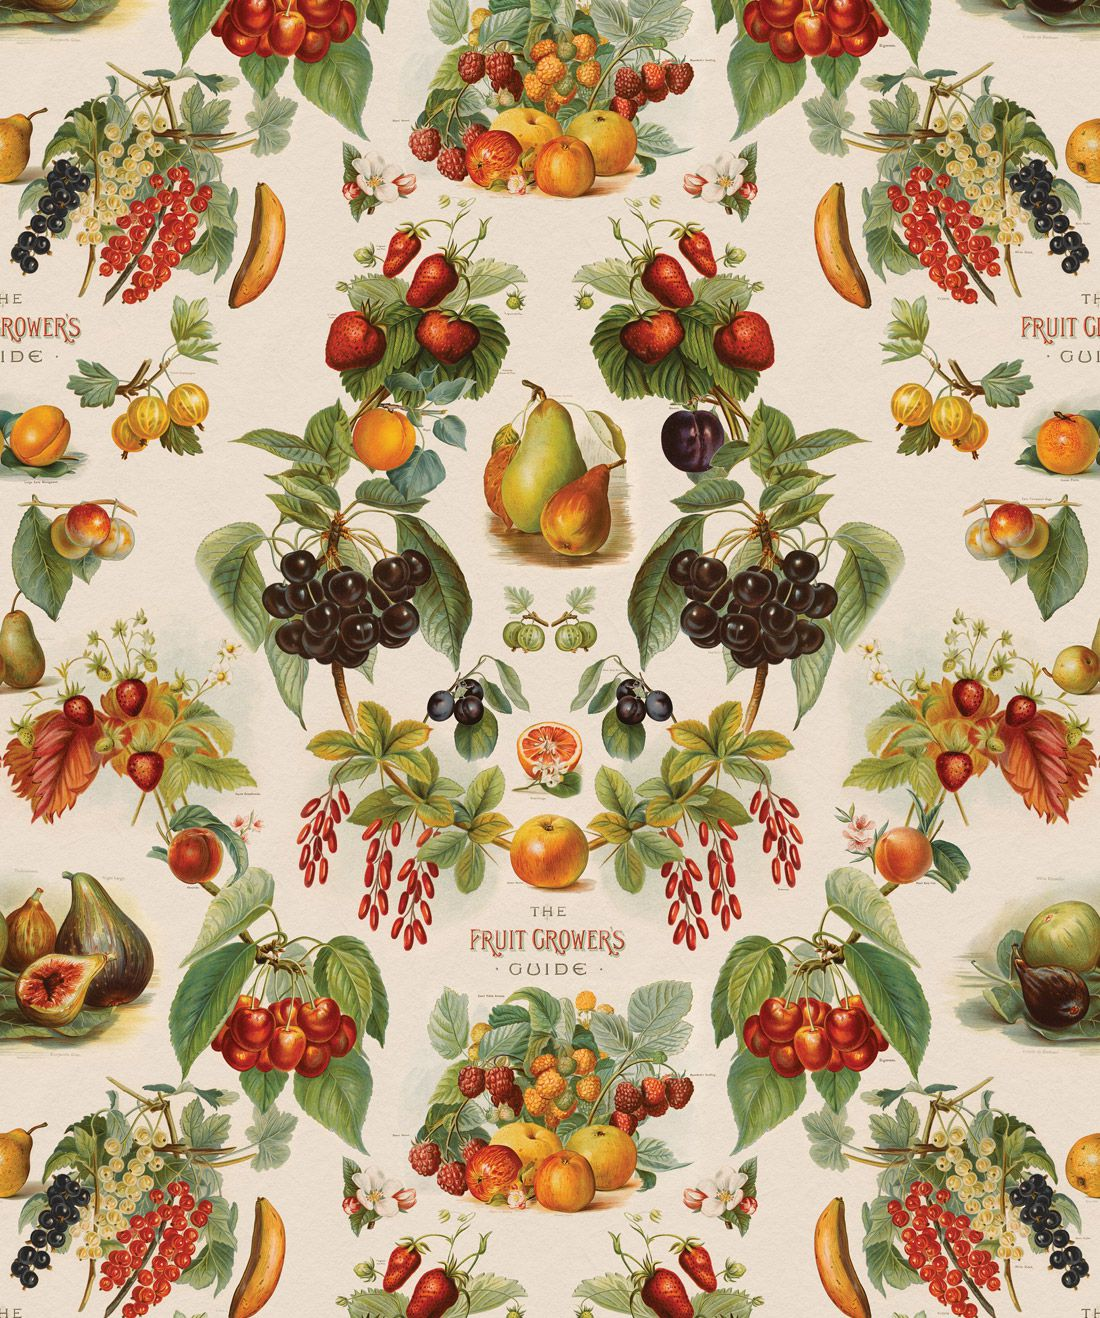 The Fruit Growers Guide Wallpaper